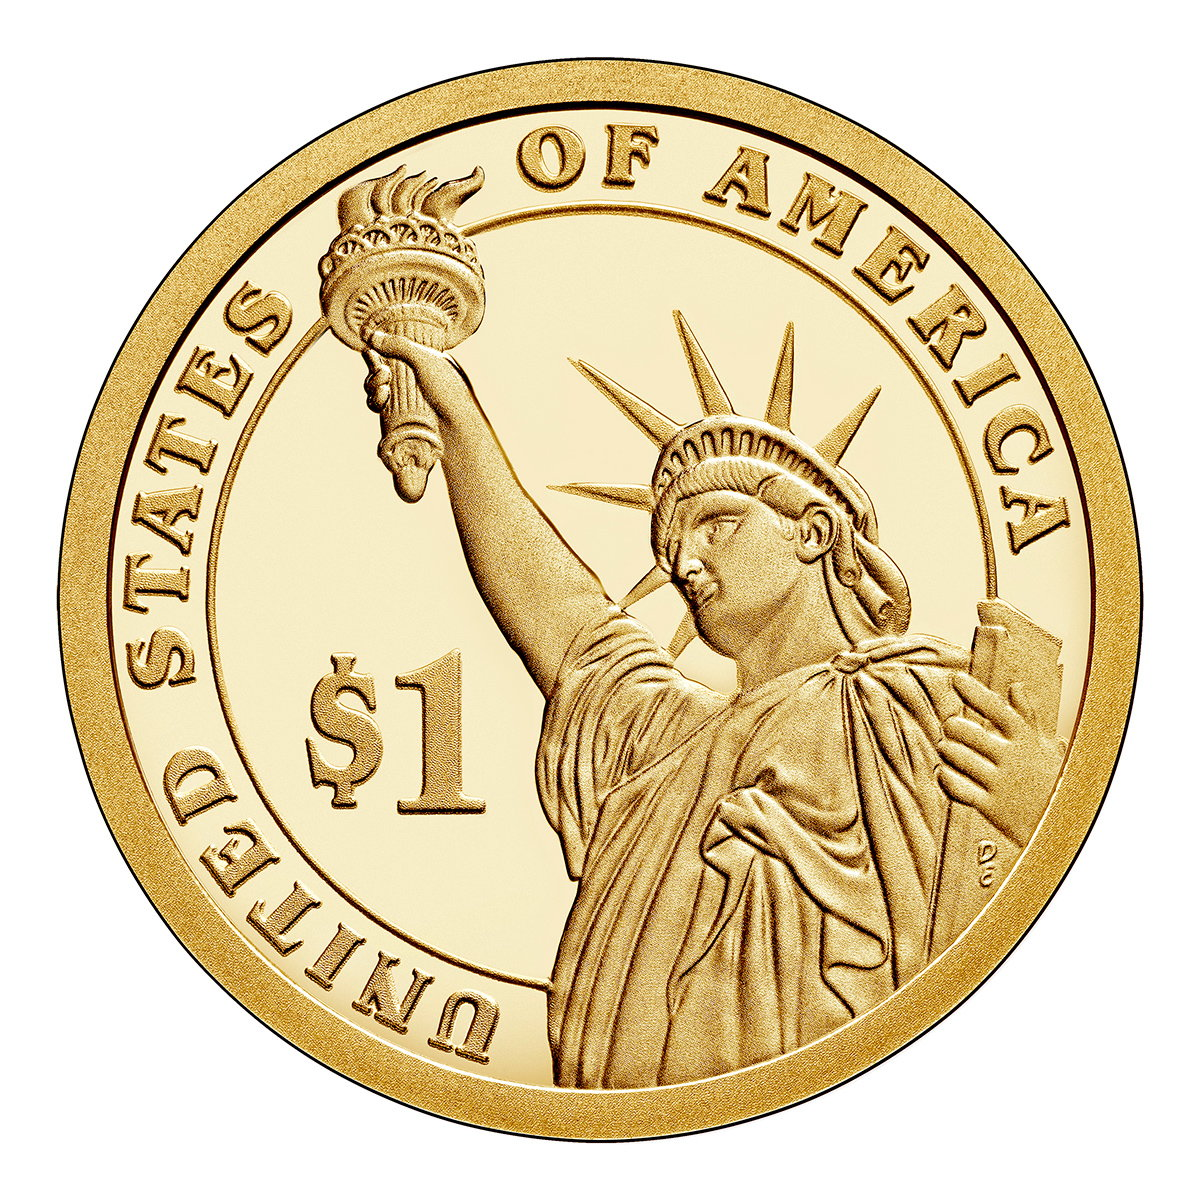 United States Mint Seeks Artists to Design Coins